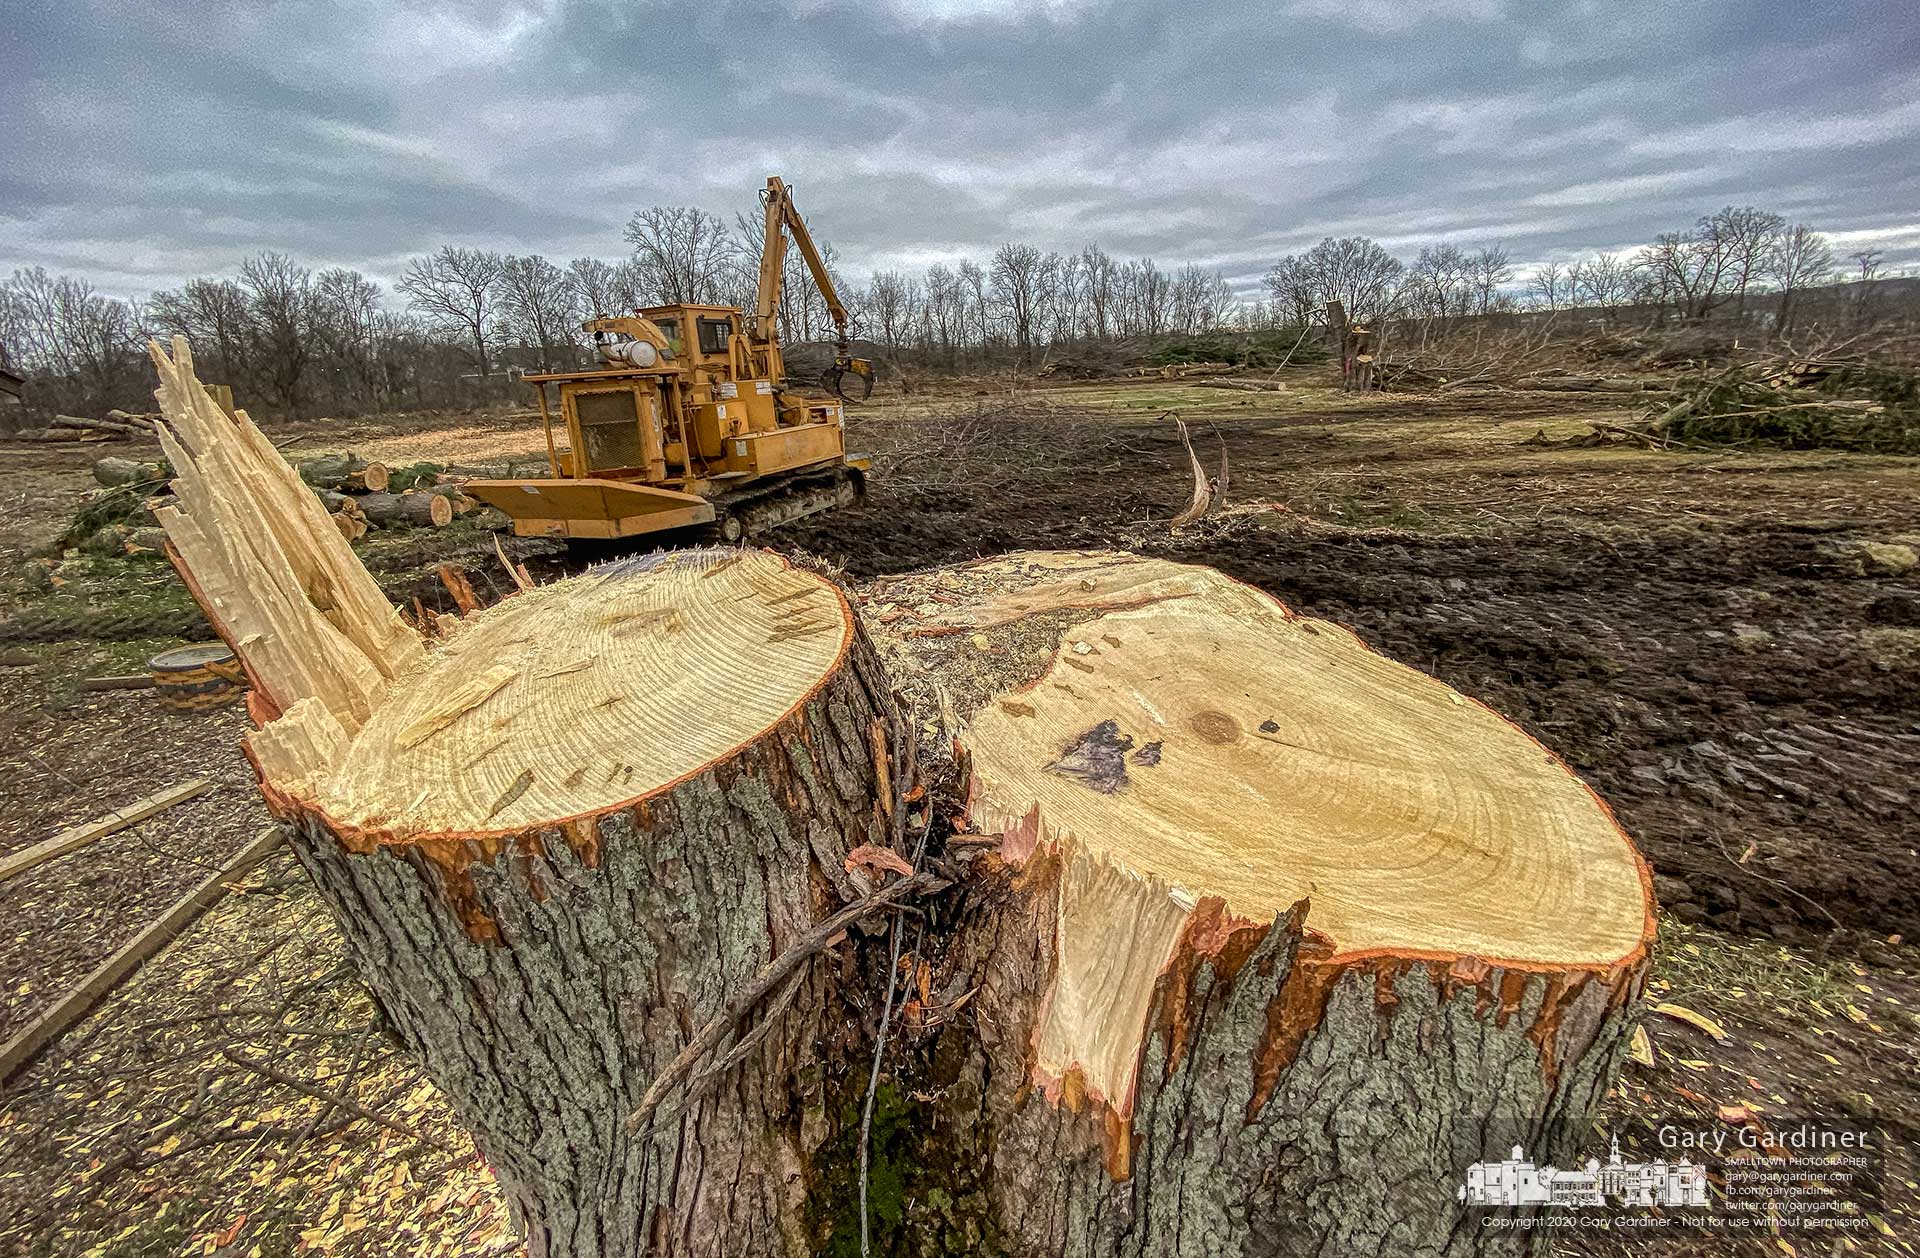 The stump of a large maple tree sits at the edge of land along Arica Road at County Line where construction began Friday for a skilled-nursing facility with the clearing of trees and brush from the site. My Final Photo for March 6, 2020.